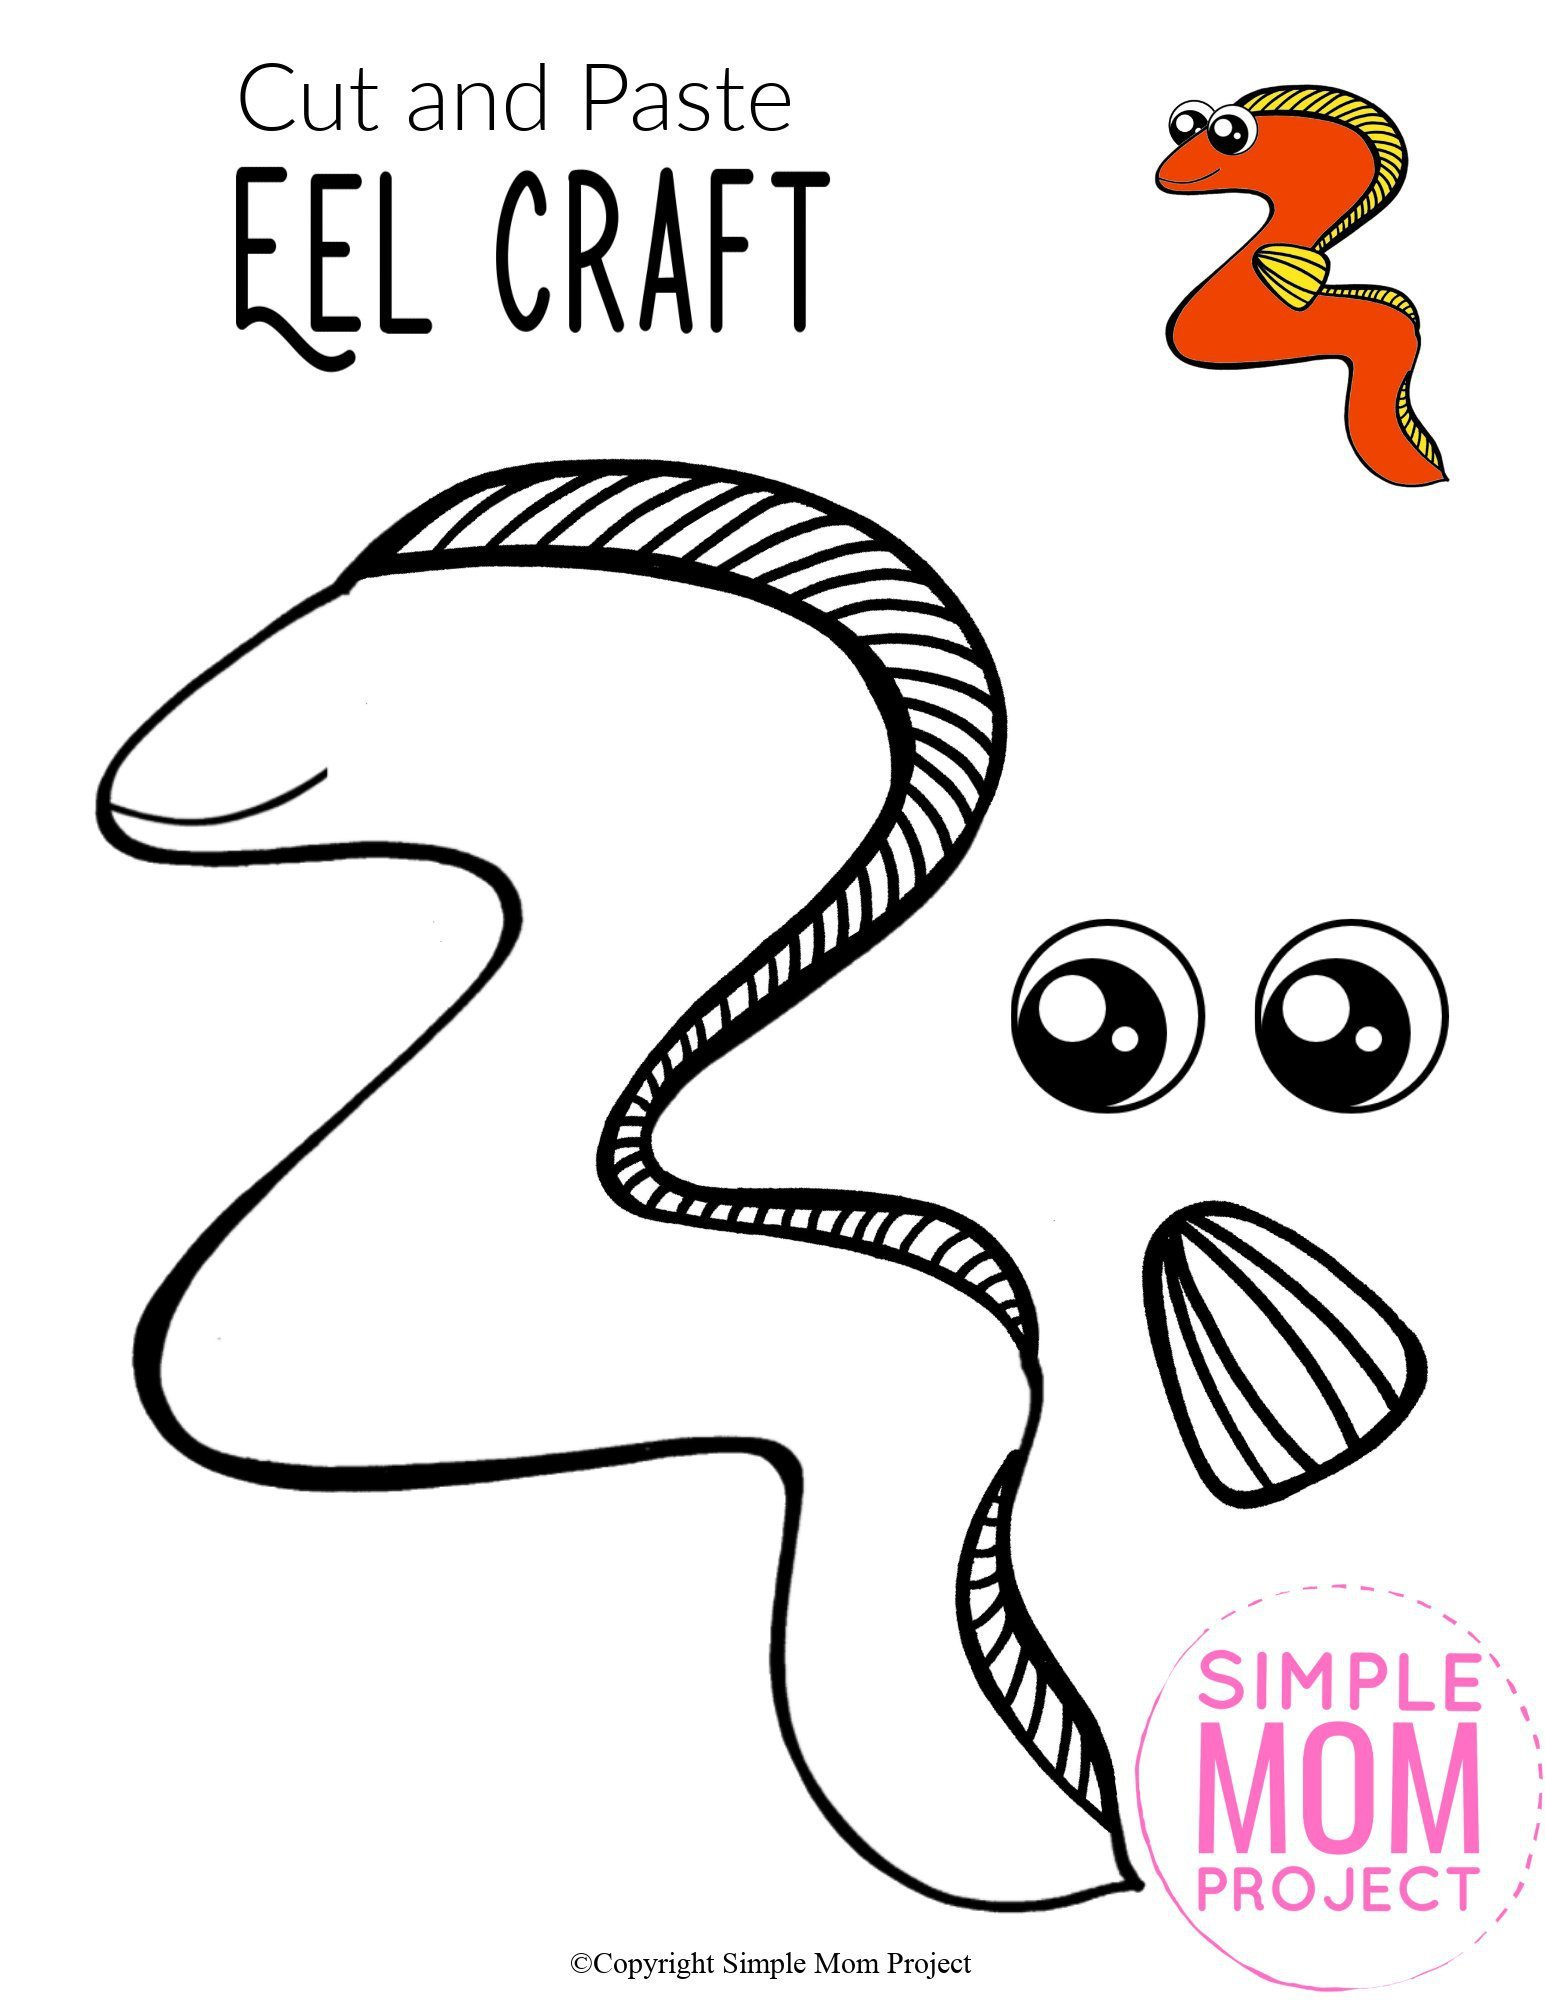 Free Printable Ocean Animal Eel Crafts for kids of all ages, including preschoolers and toddlers 5